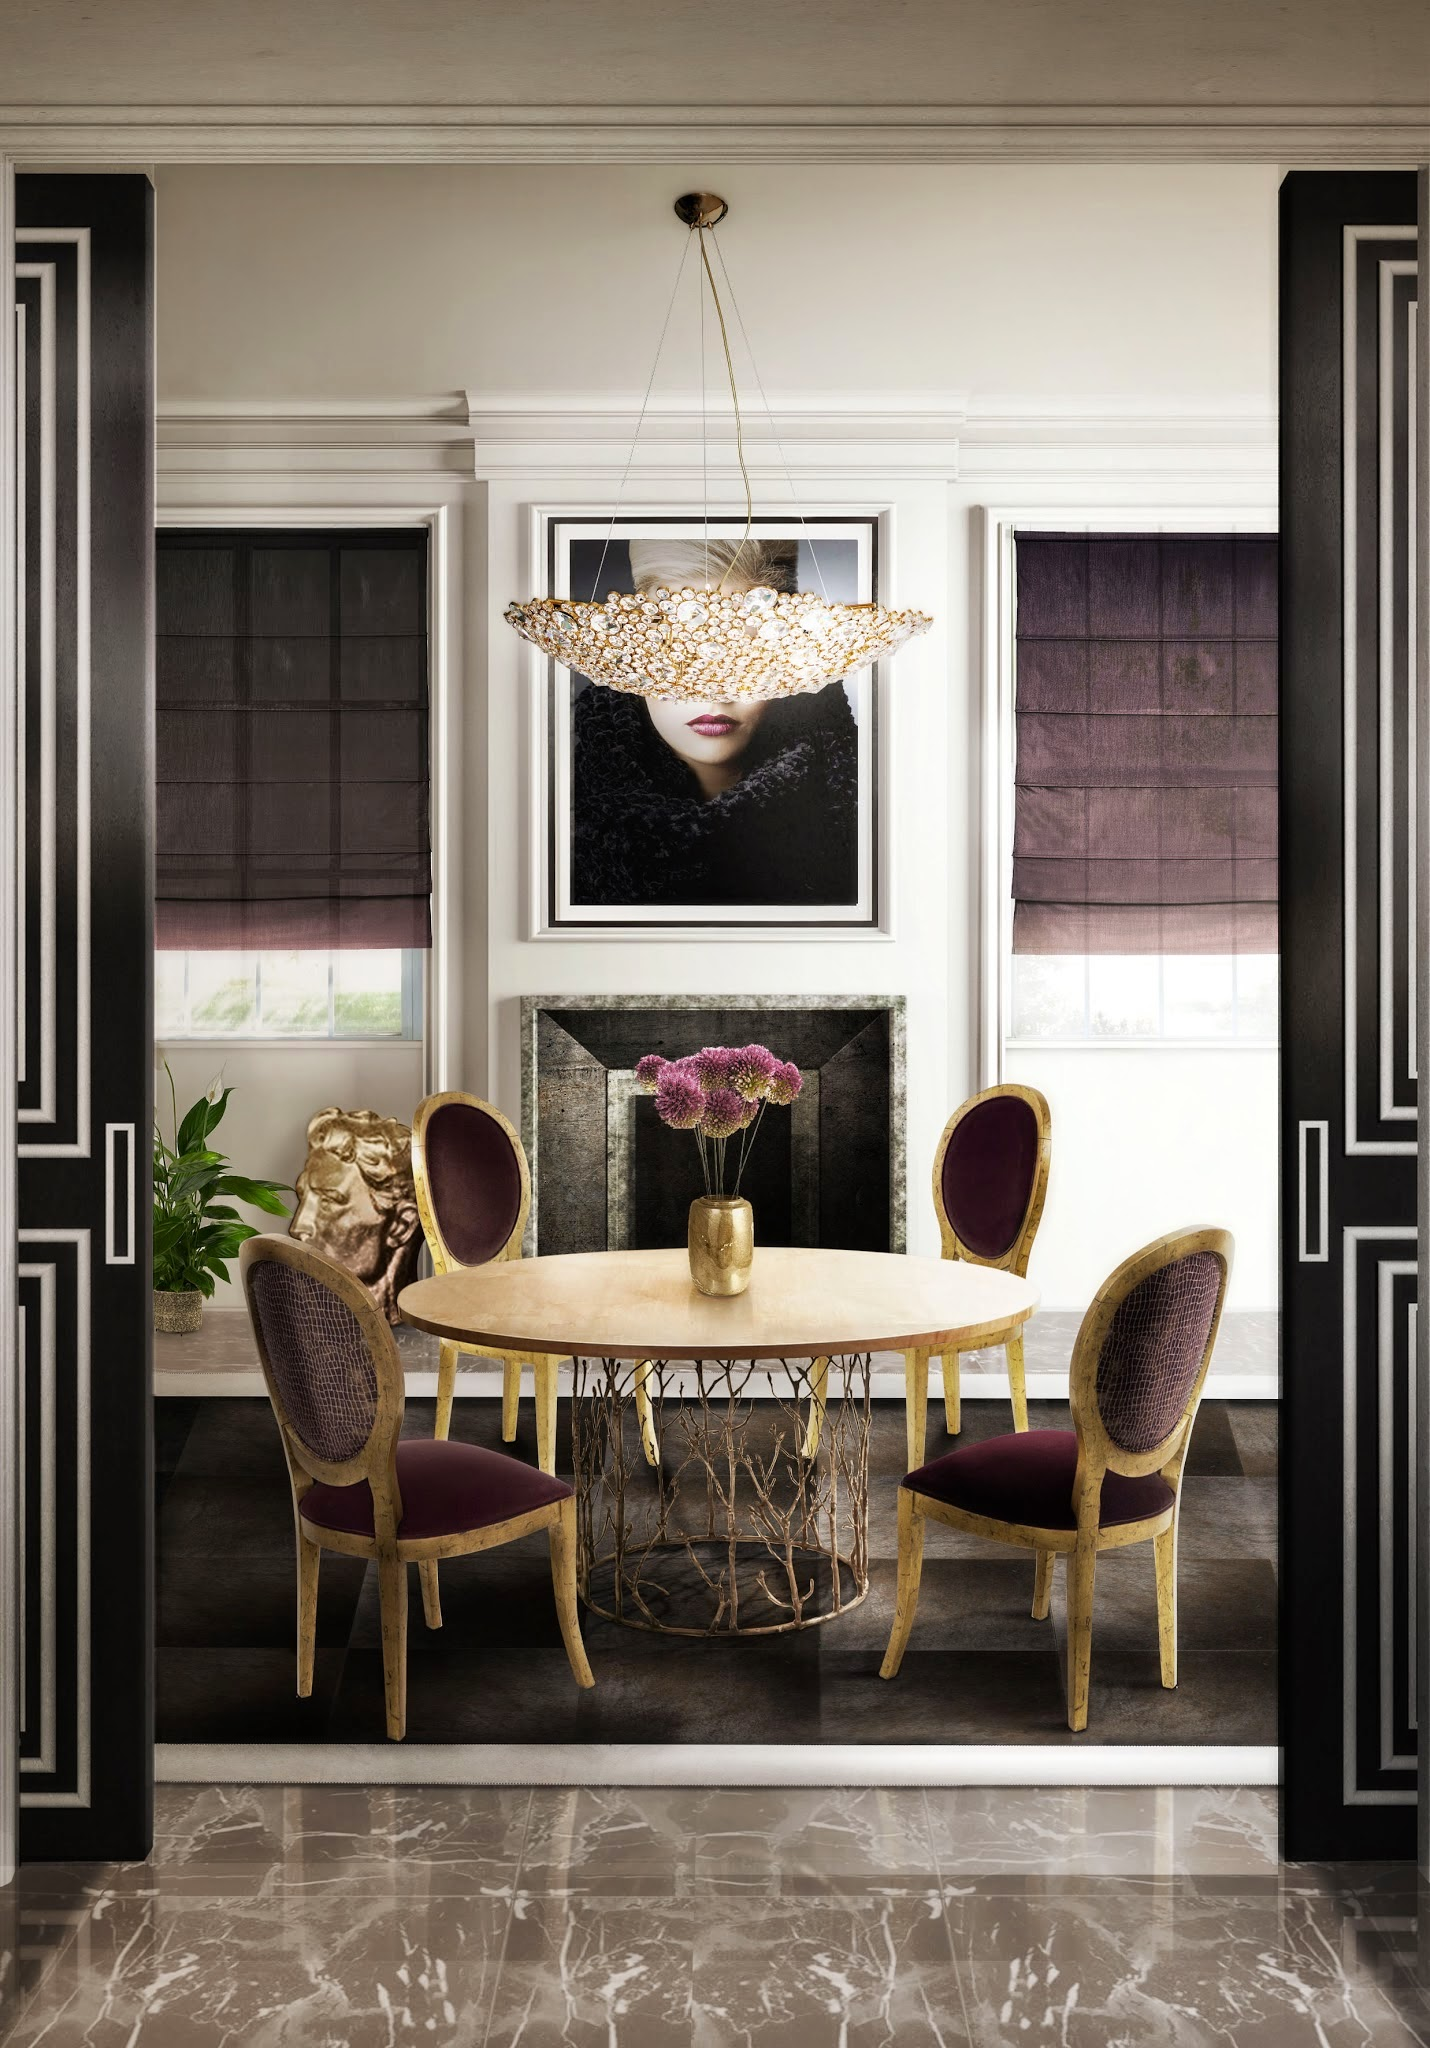 Modern Dining Room Sets for Your Home Design  modern dining room sets Modern Dining Room Sets for Your Home Design enchanted dining table eternity chandelier diamantra dining chair koket projects